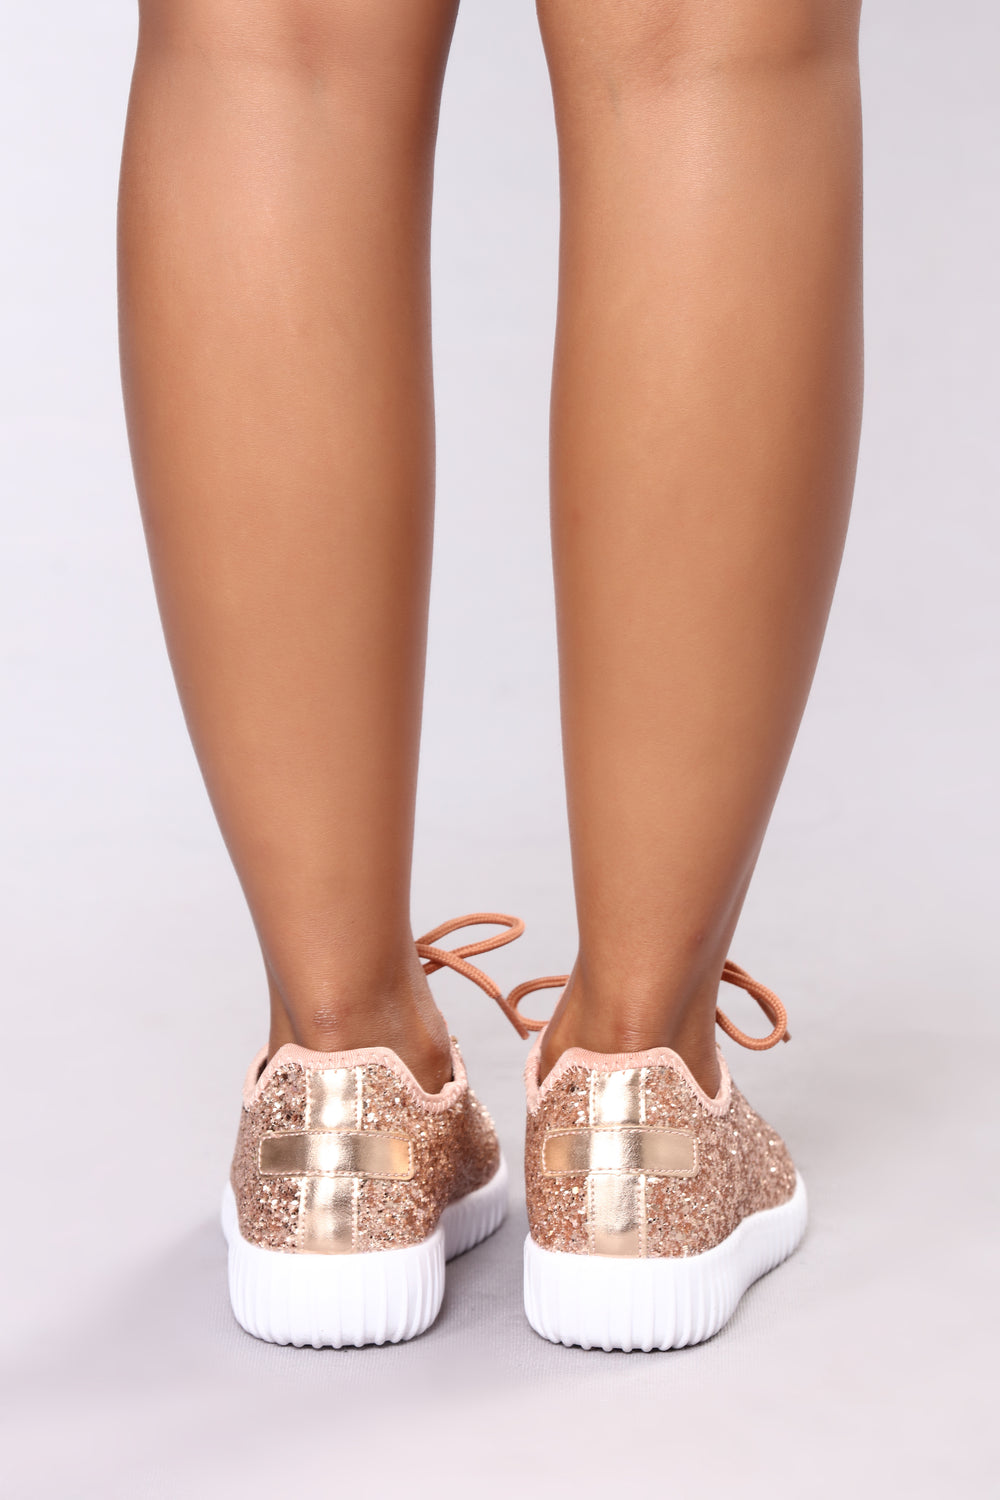 Sizzle Sis Sneaker - Rose Gold